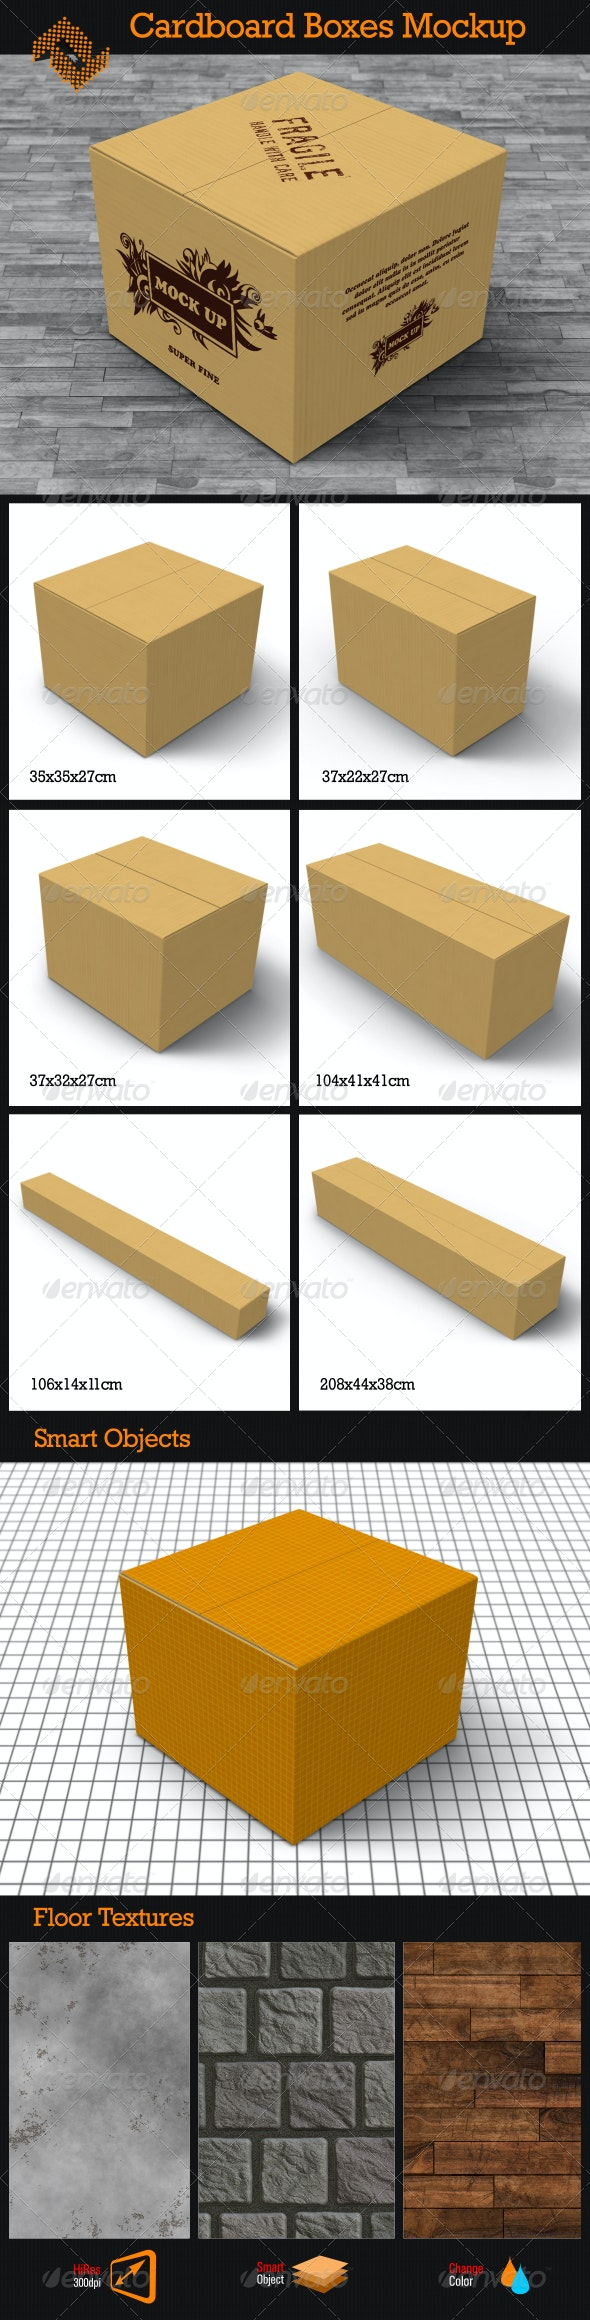 6 Cardboard Boxes Mockup - Packaging Product Mock-Ups